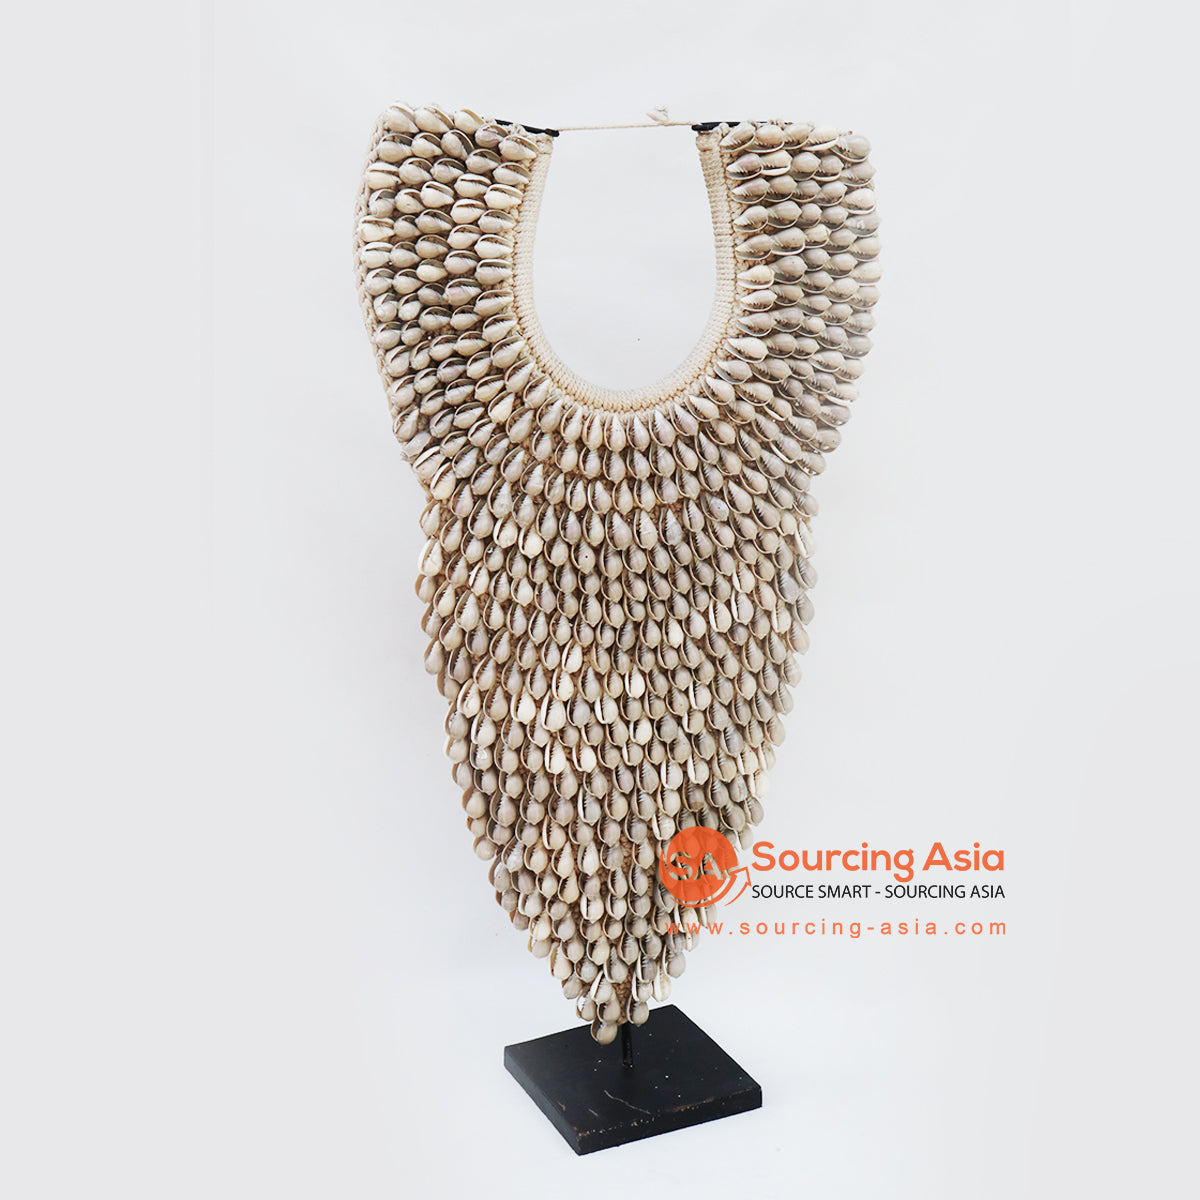 KNTC097 PAPUA SHELL NECKLACE ON STAND